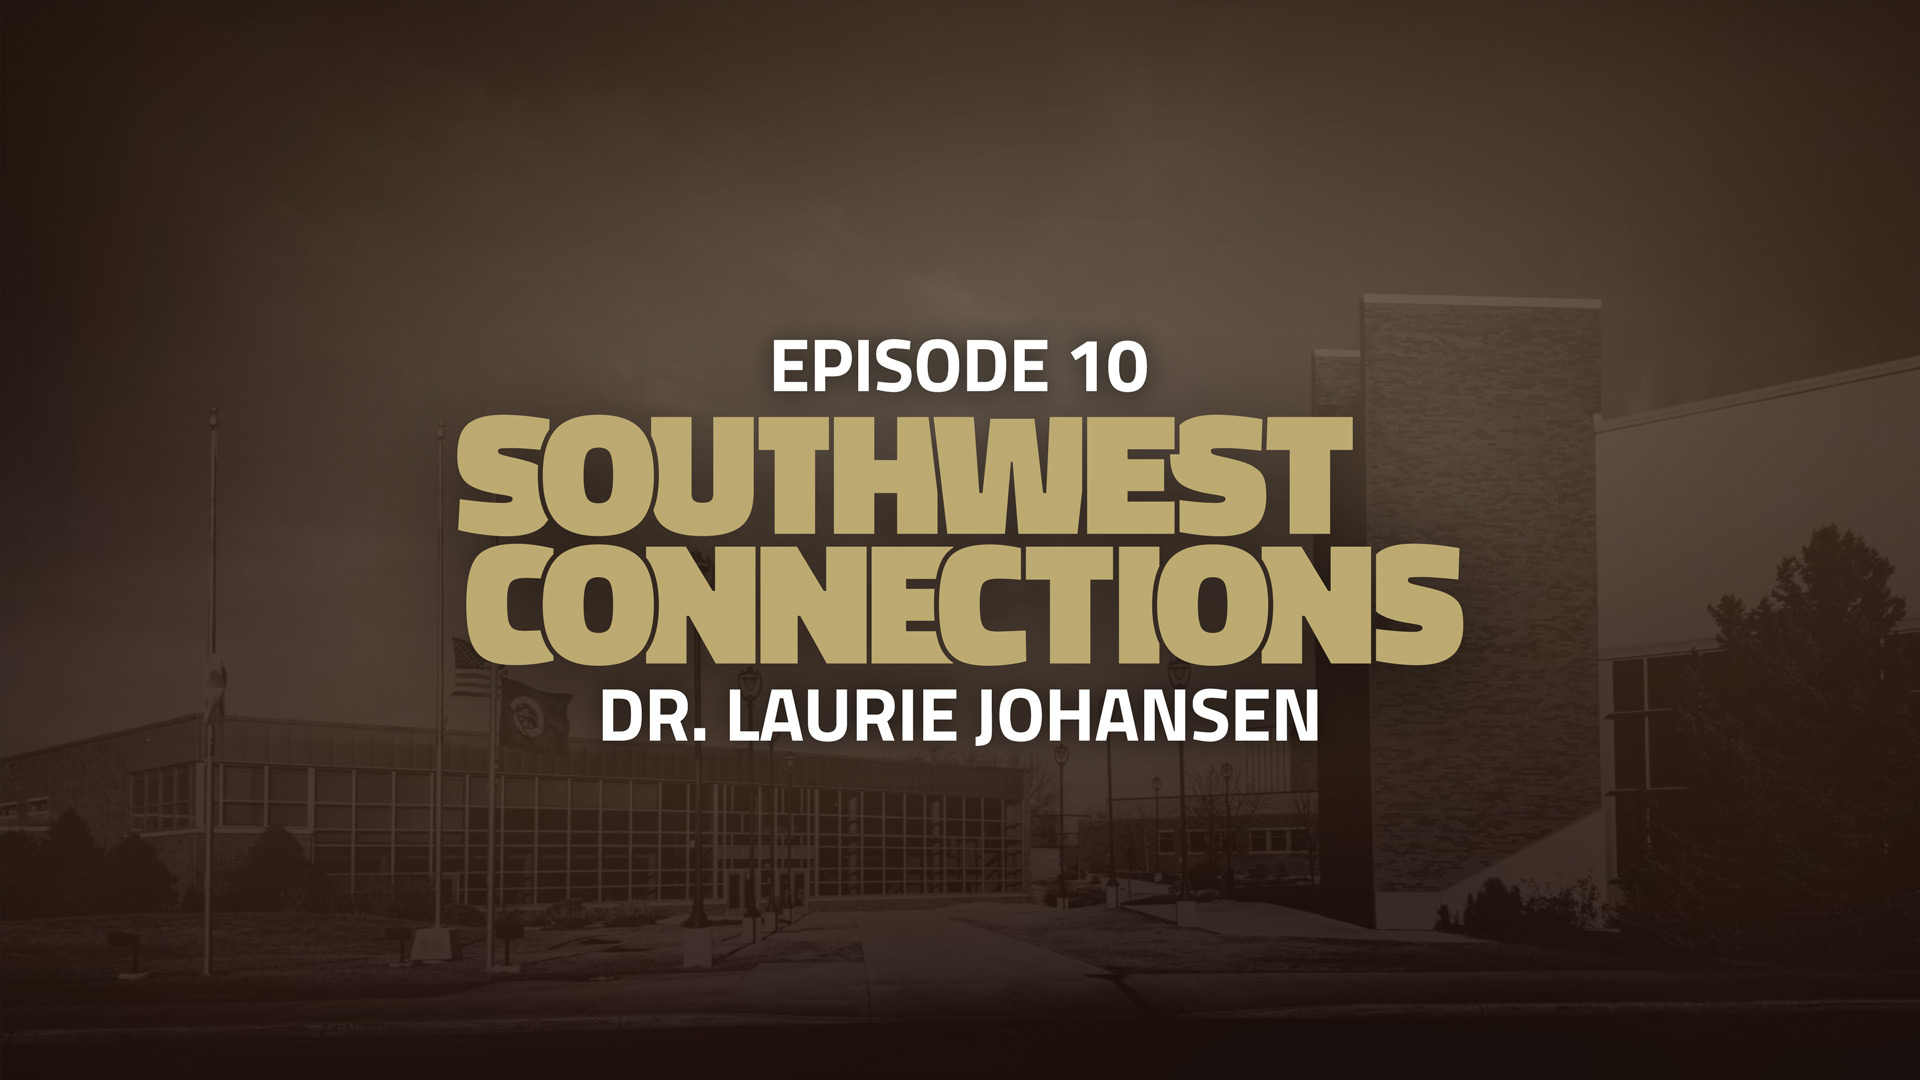 Southwest Connections Episode 10: Dr. Laurie Johansen